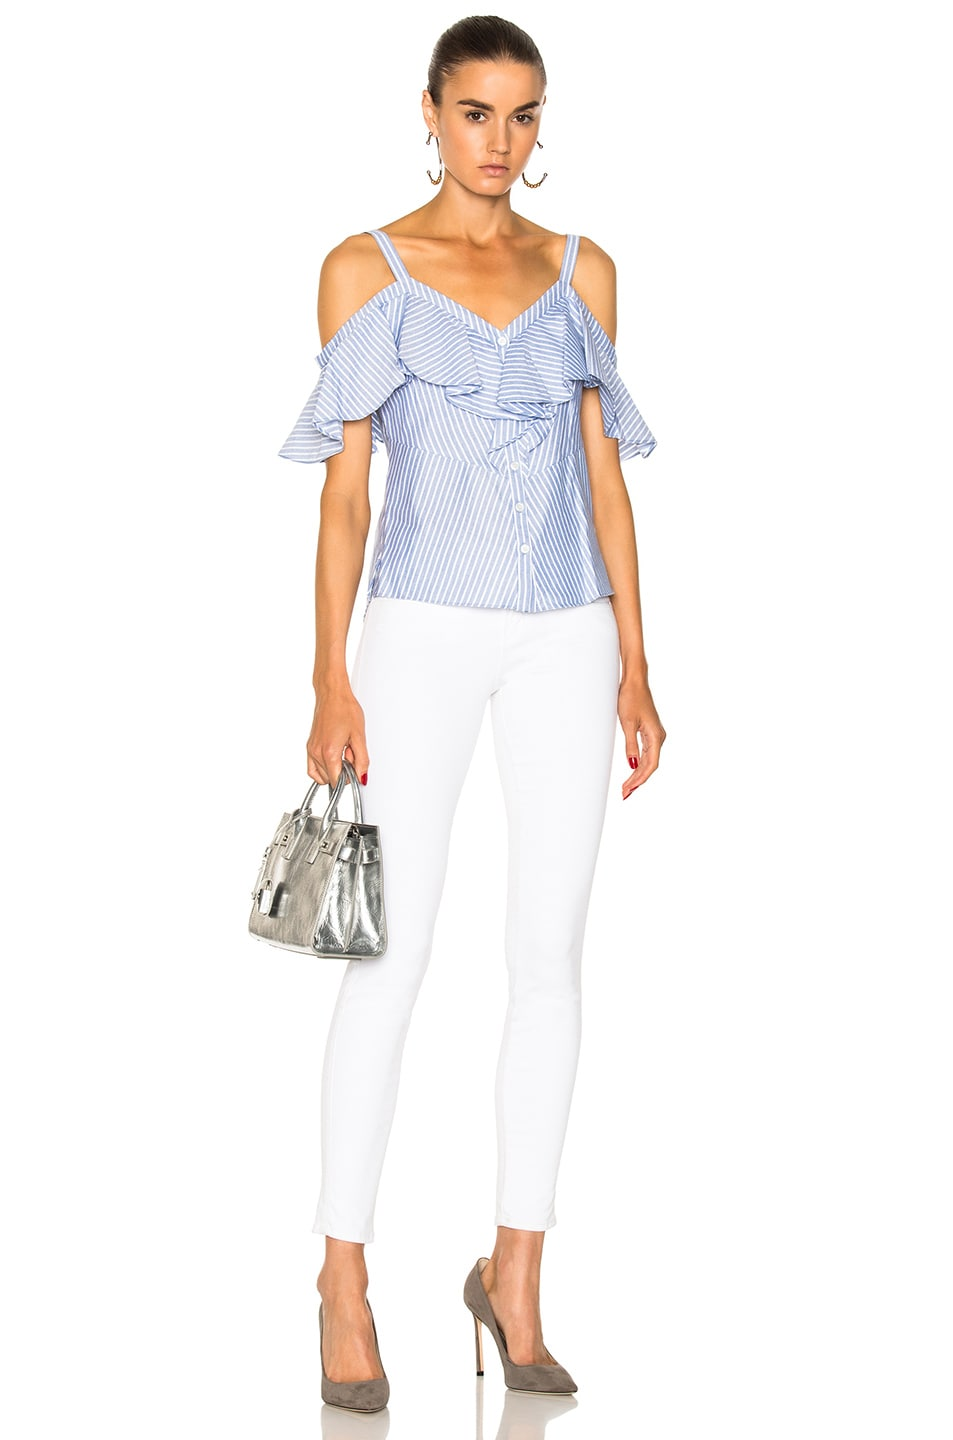 4ae4f048b34c0f Image 4 of Veronica Beard Grant Off the Shoulder Ruffle Shirt in Blue    White